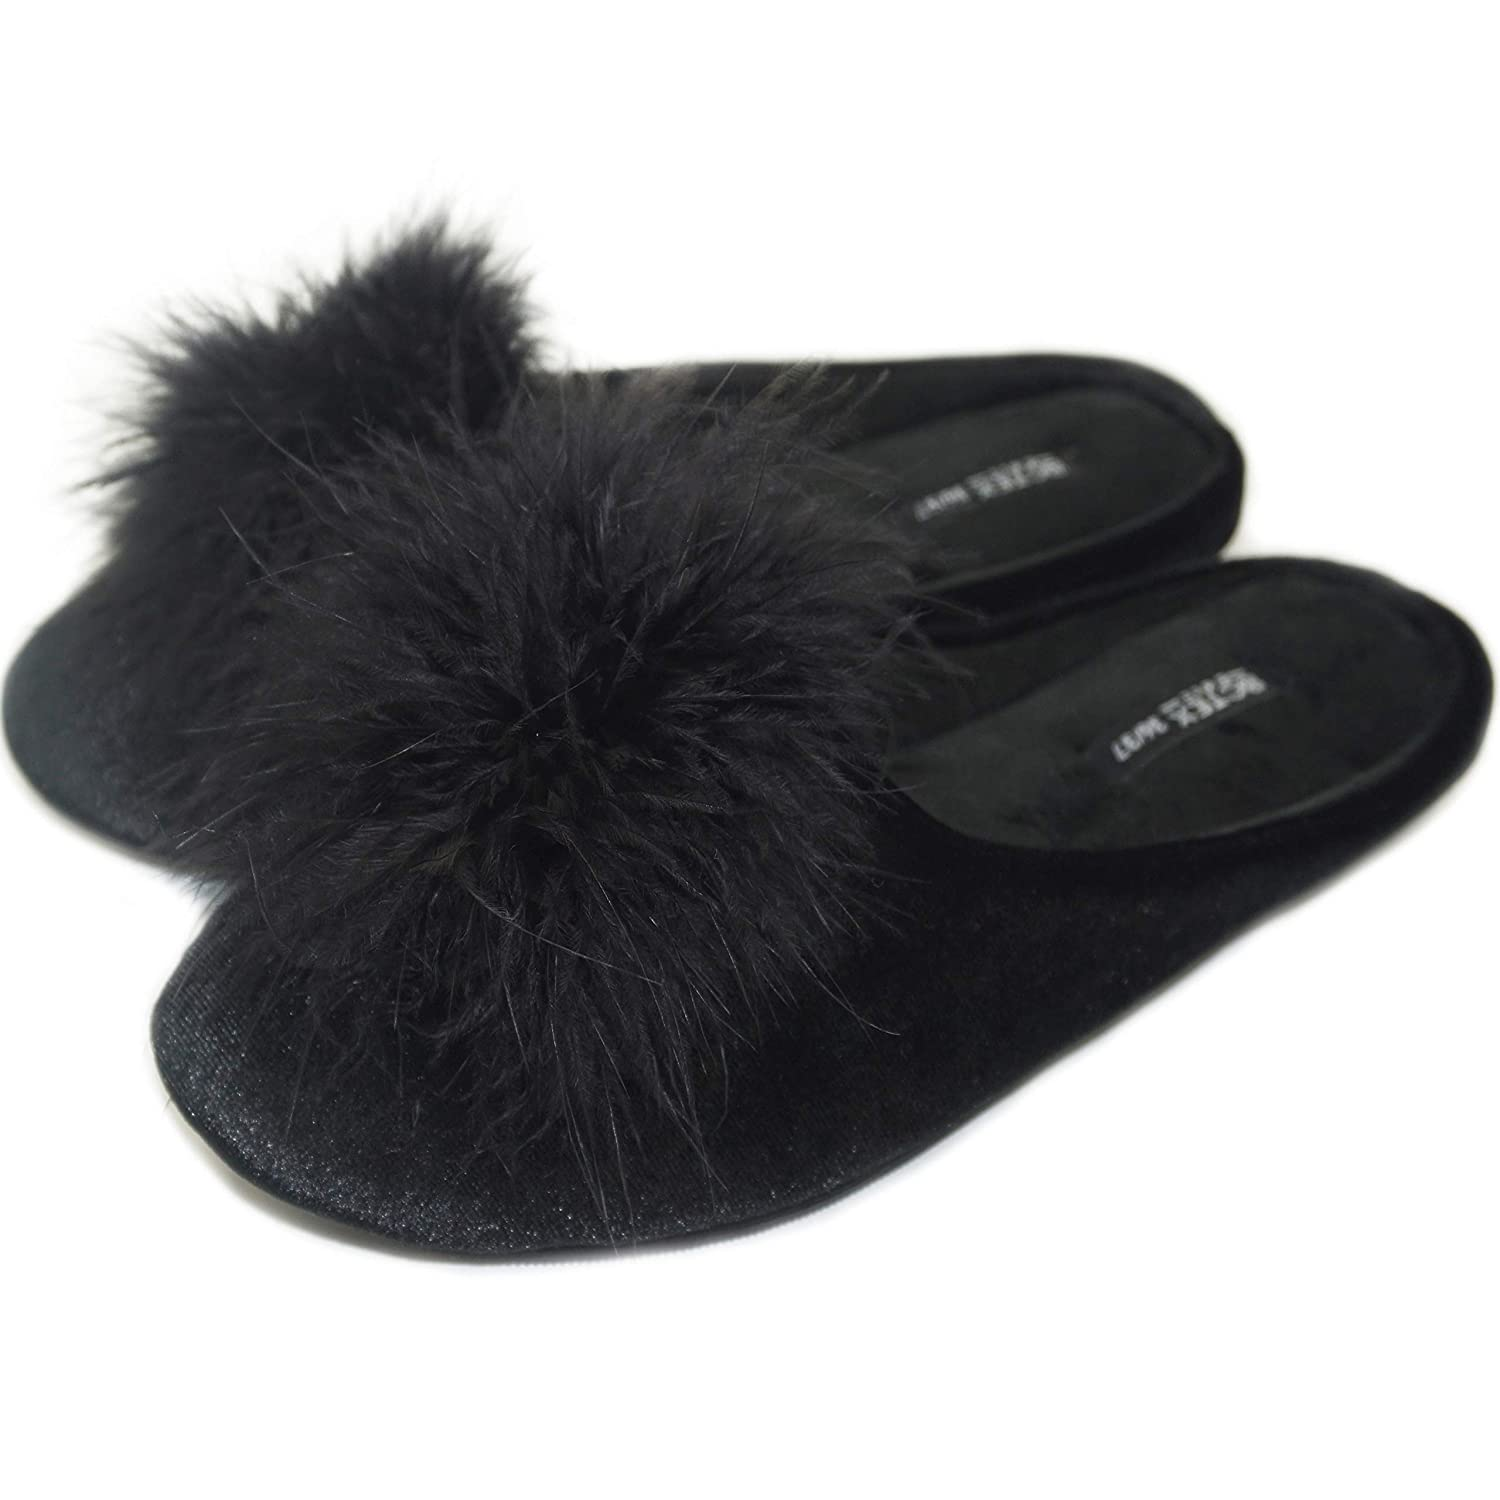 cfe1ee82956da BCTEX COLL Women's Cozy Velvet Slippers with Fluffy Pom Pom Feather Ladies  Memory Foam Flat Slide Sandals House Shoes with Non-Slip Rubber Sole